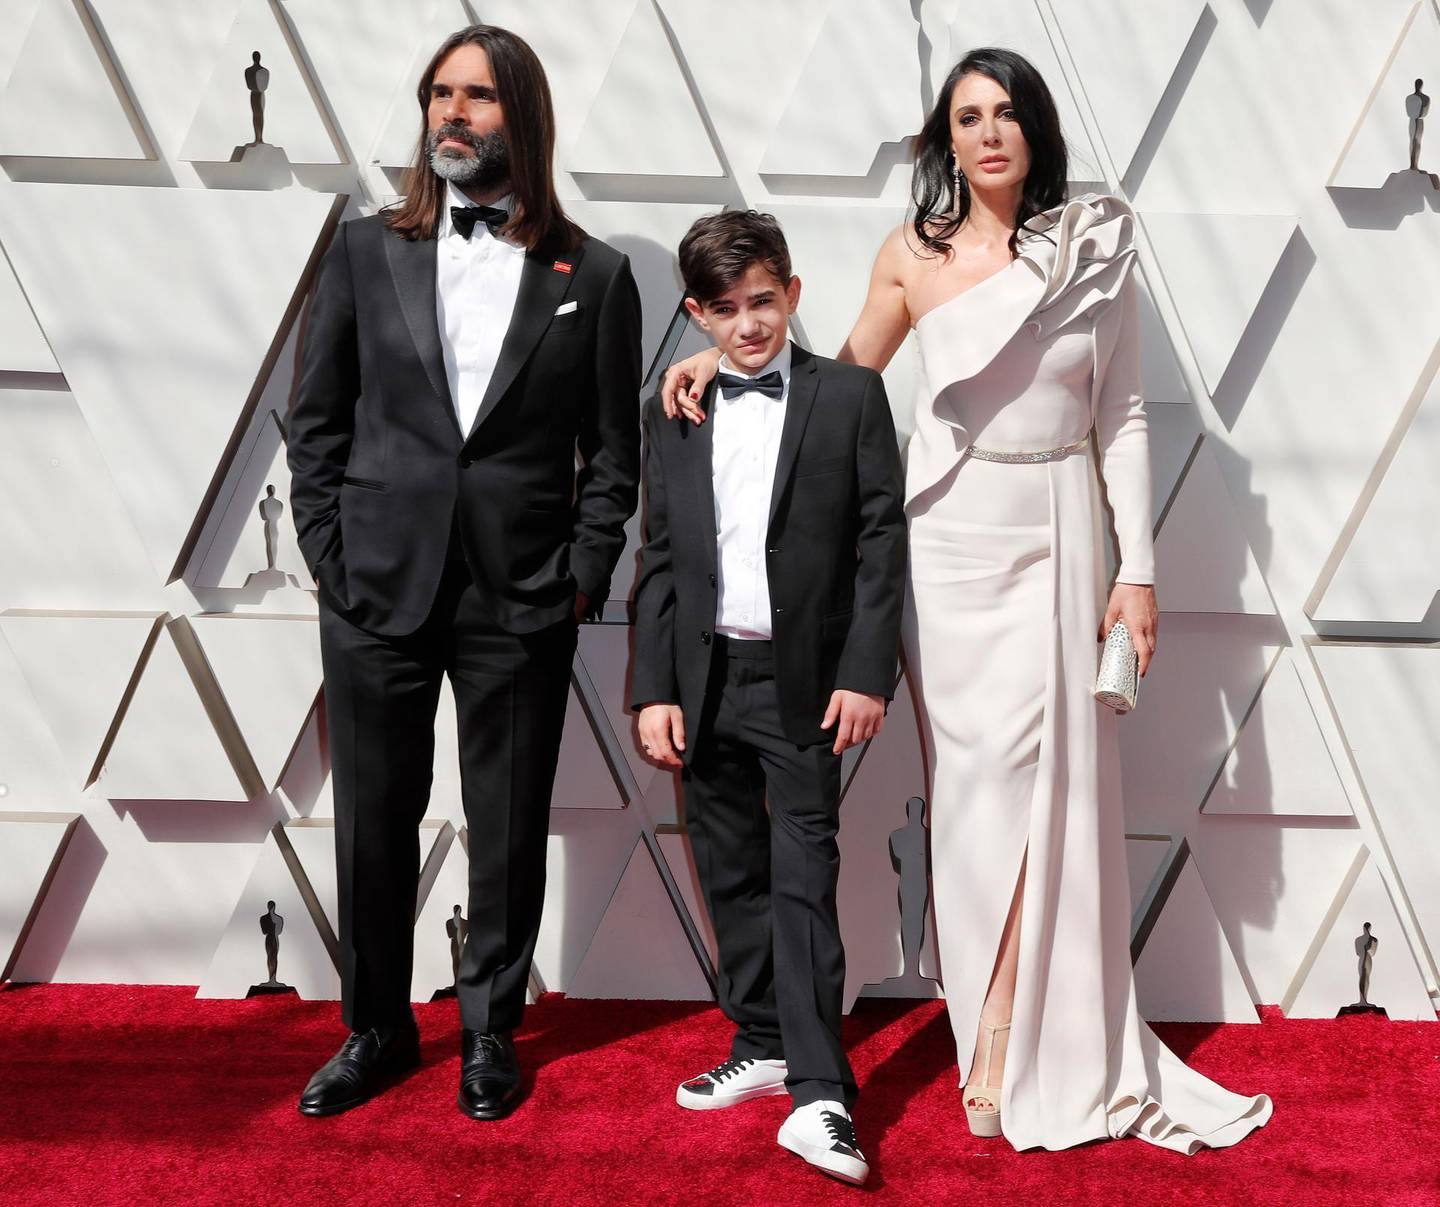 epa07394181 Khaled Mouzanar (L) Zain al-Rafeea (C) and Nadine Labaki (R) arrive for the 91st annual Academy Awards ceremony at the Dolby Theatre in Hollywood, California, USA, 24 February 2019. The Oscars are presented for outstanding individual or collective efforts in 24 categories in filmmaking.  EPA-EFE/ETIENNE LAURENT